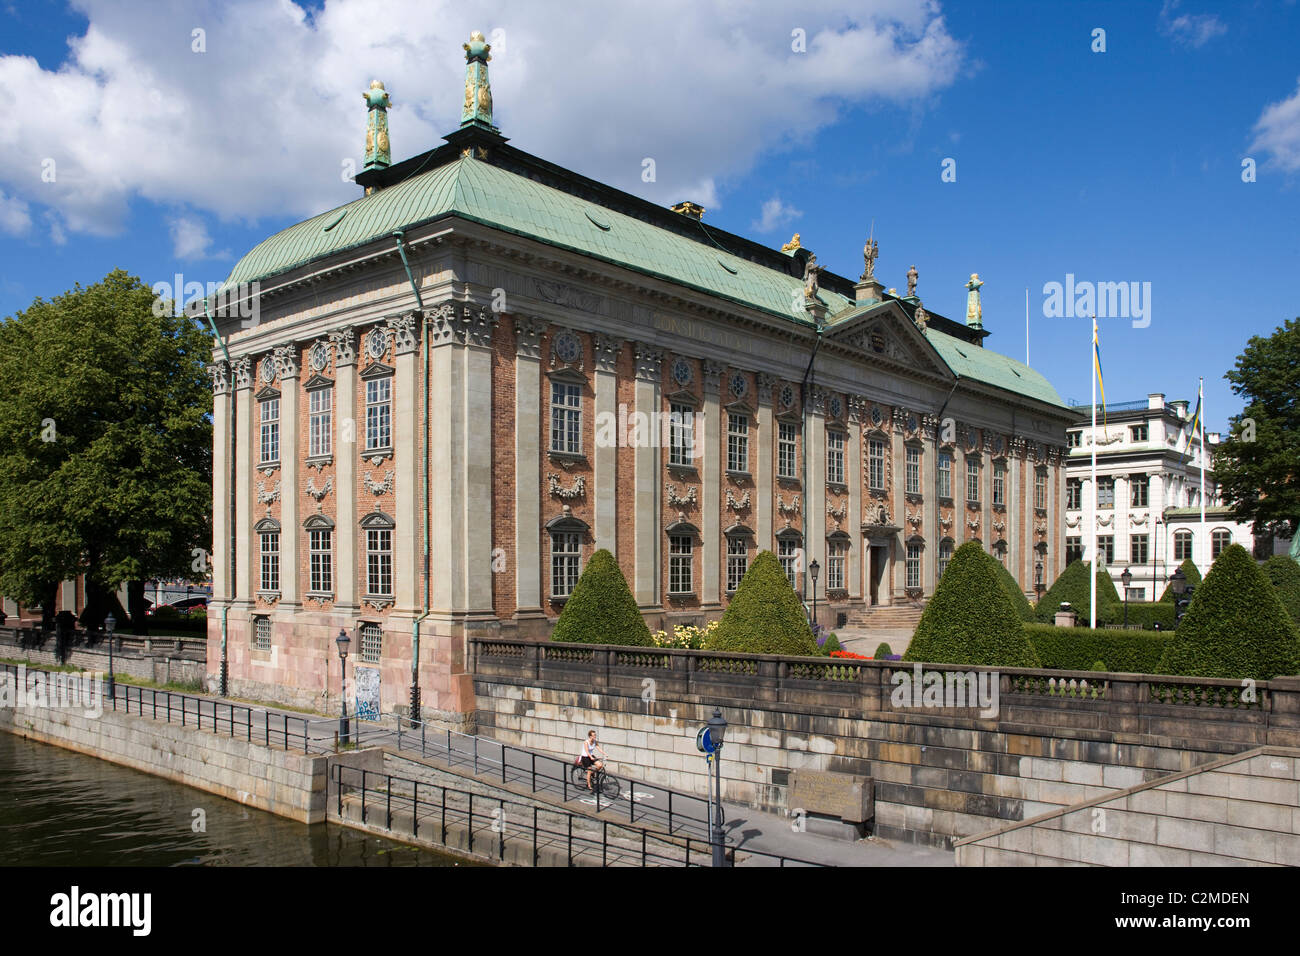 The Swedish House of Lords (Riddarhuset), Stockholm. - Stock Image